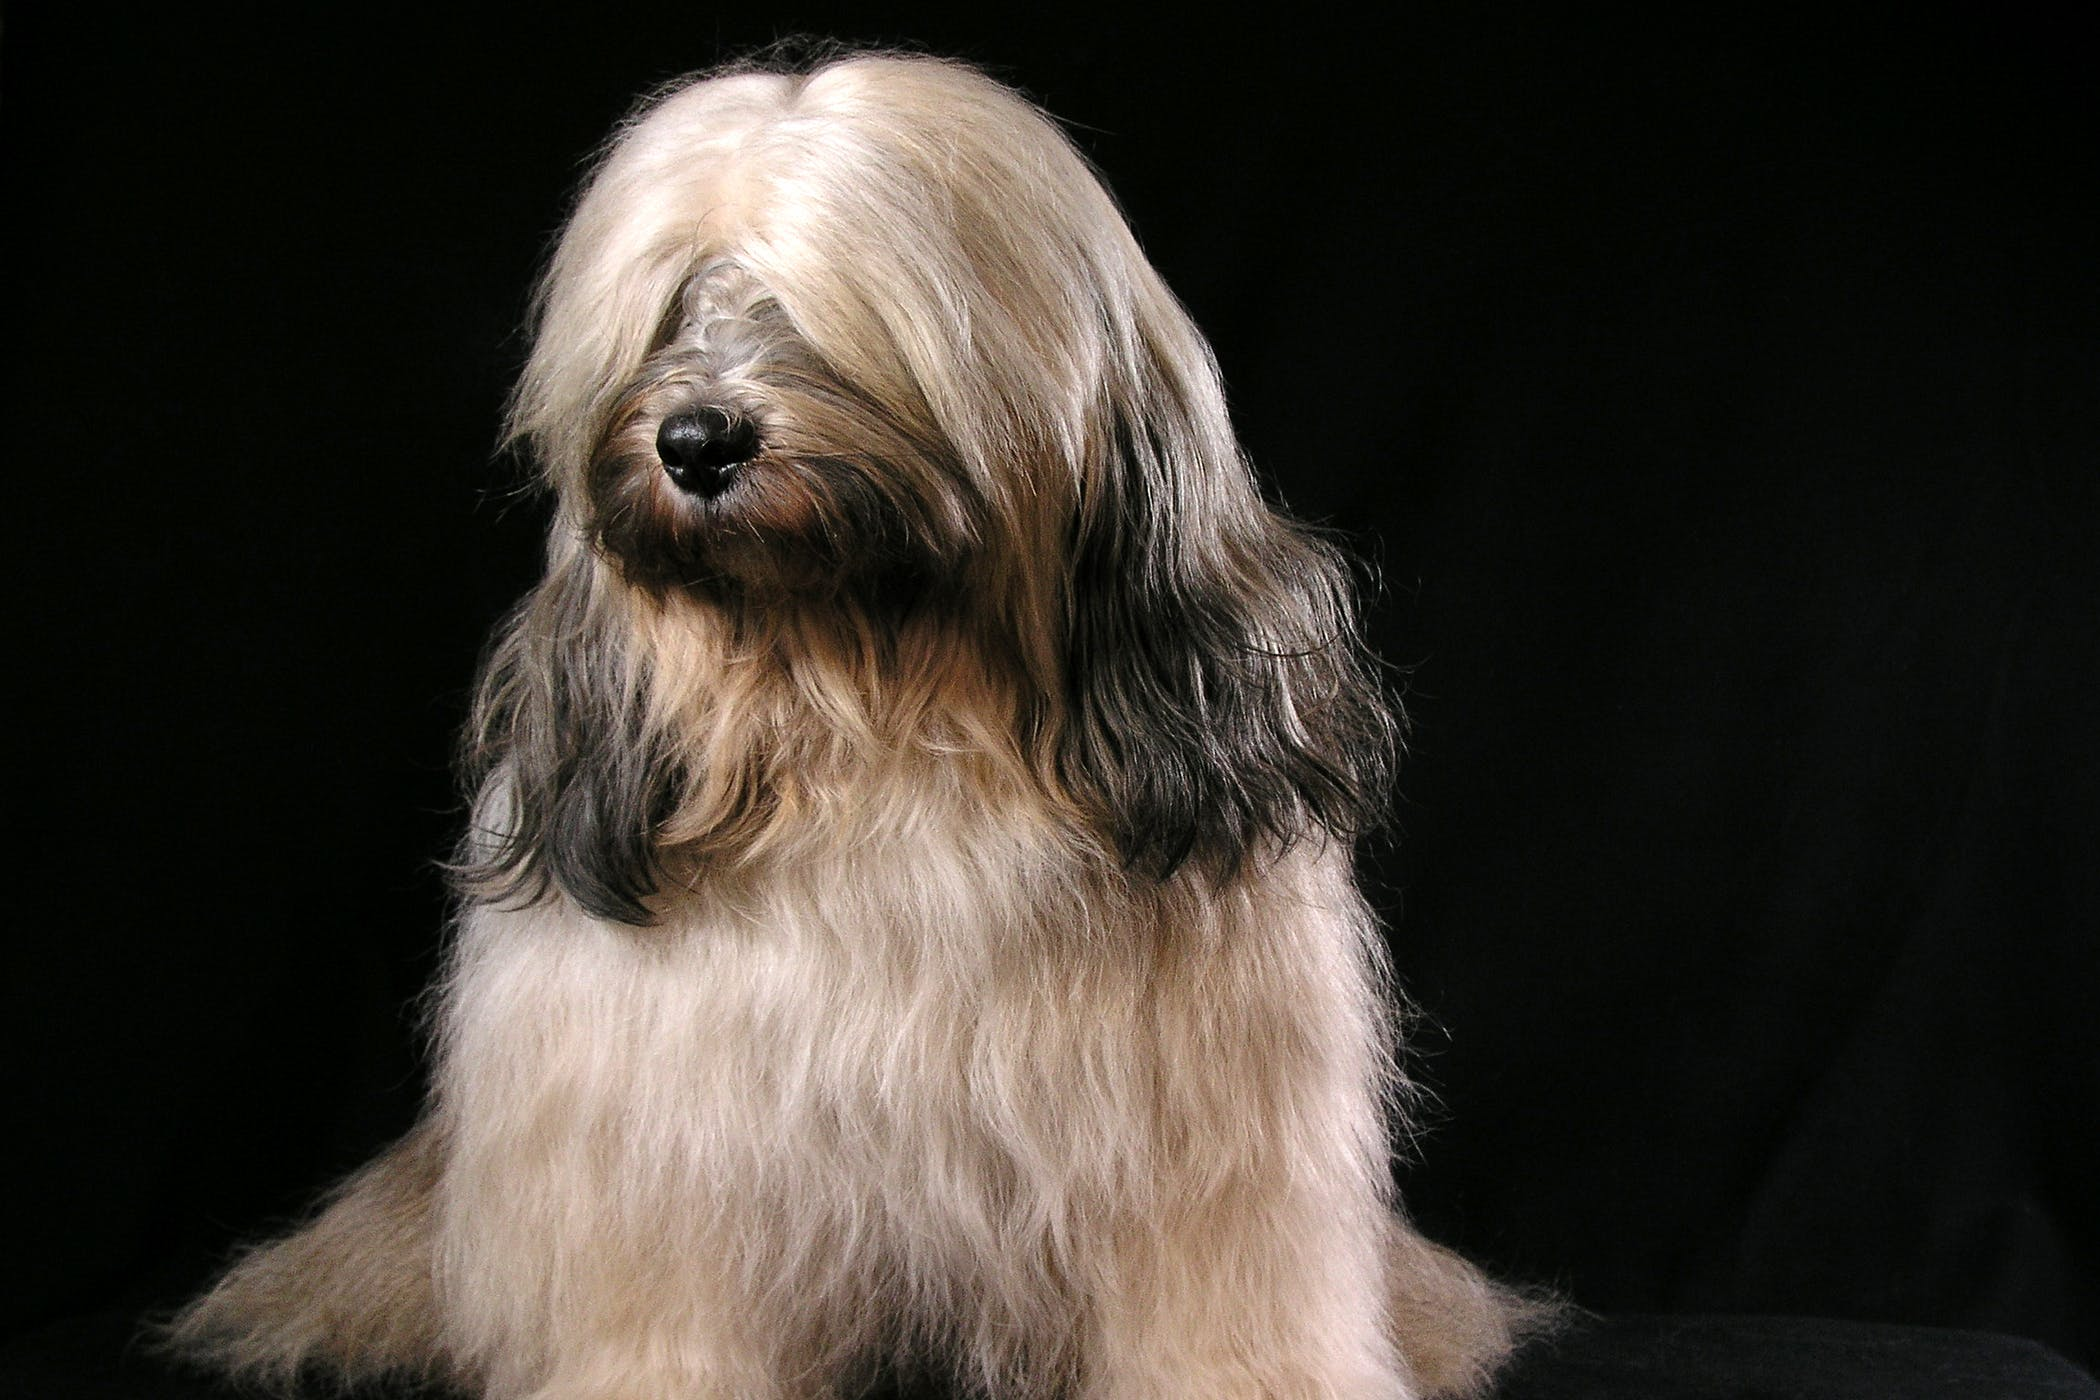 Horner's Syndrome in Dogs - Symptoms, Causes, Diagnosis